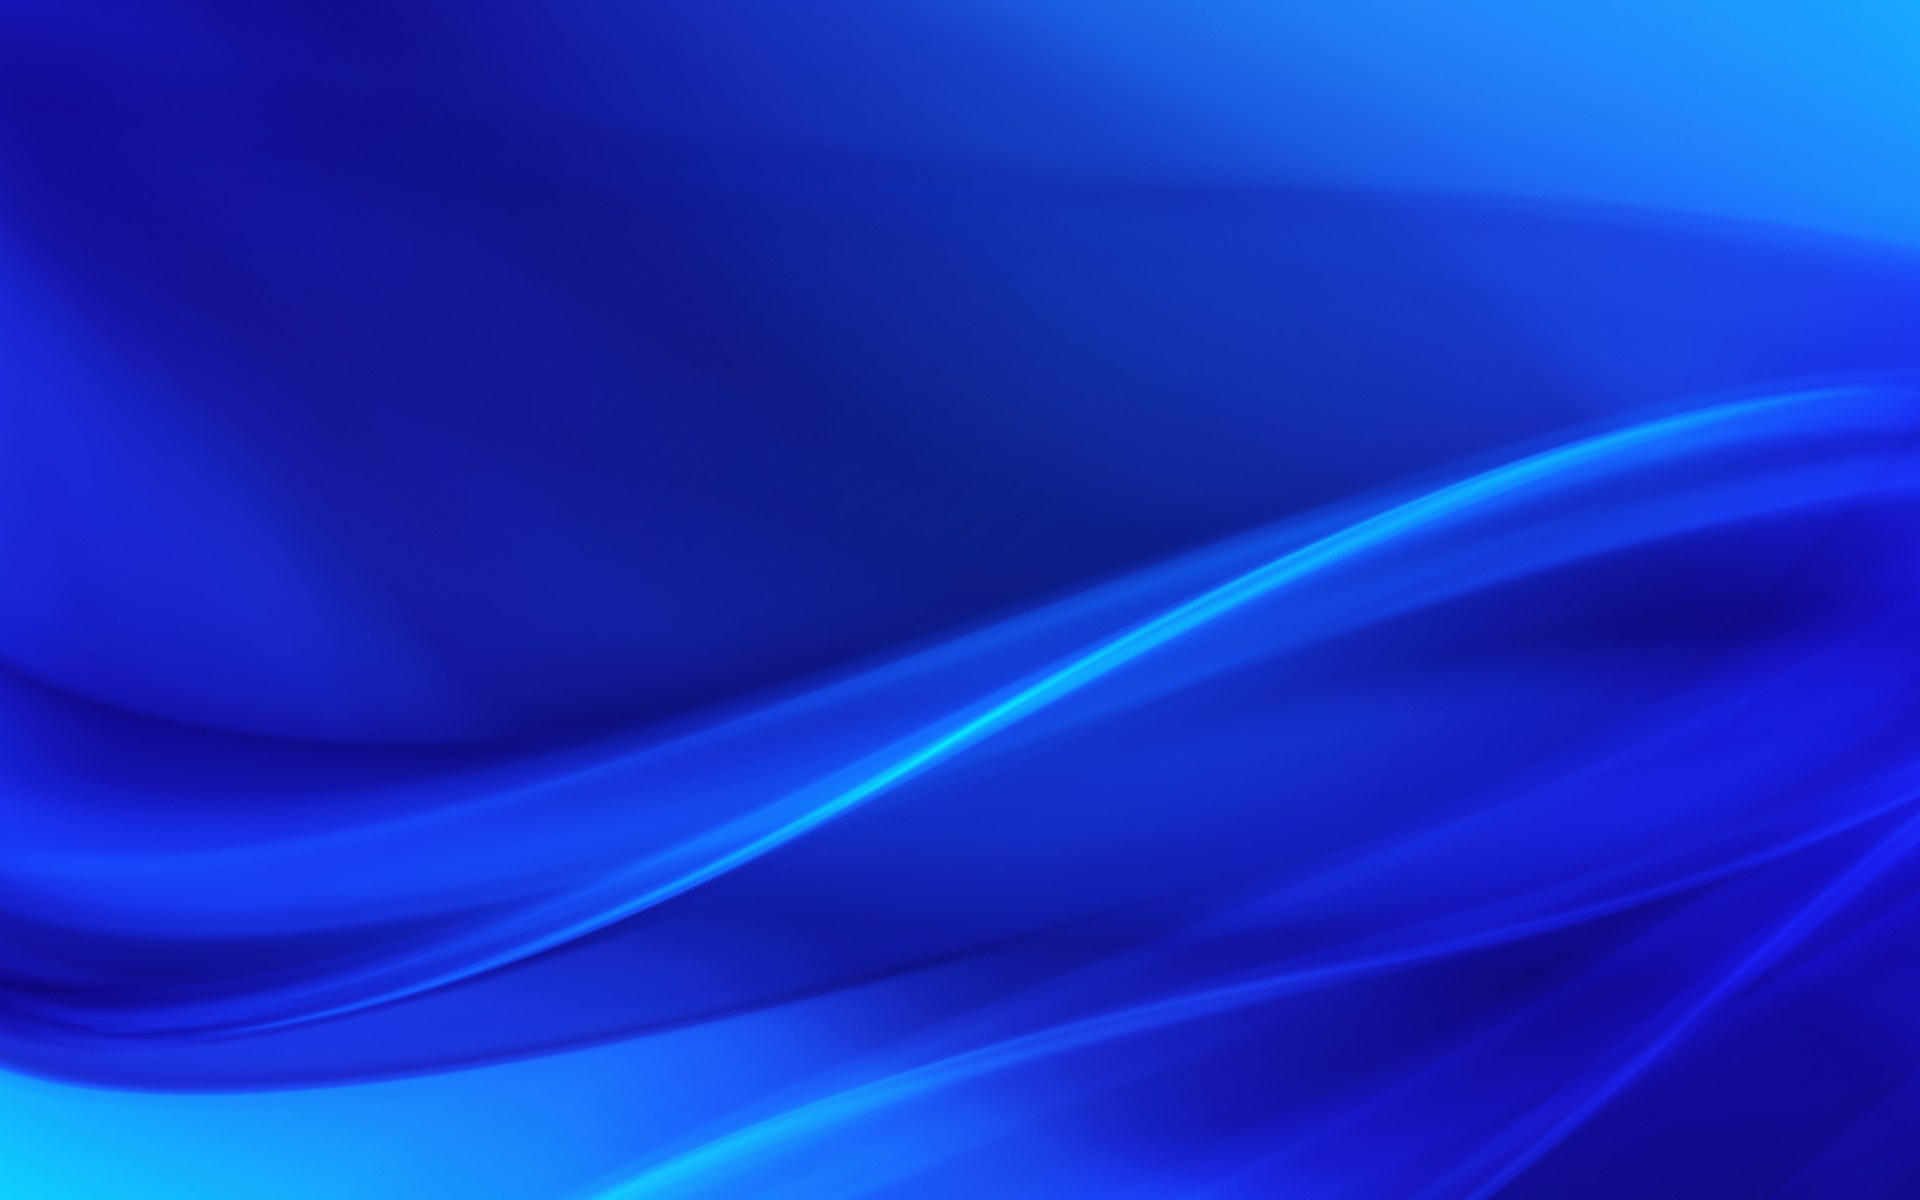 Blue Background Backgrounds → Abstract Gallery